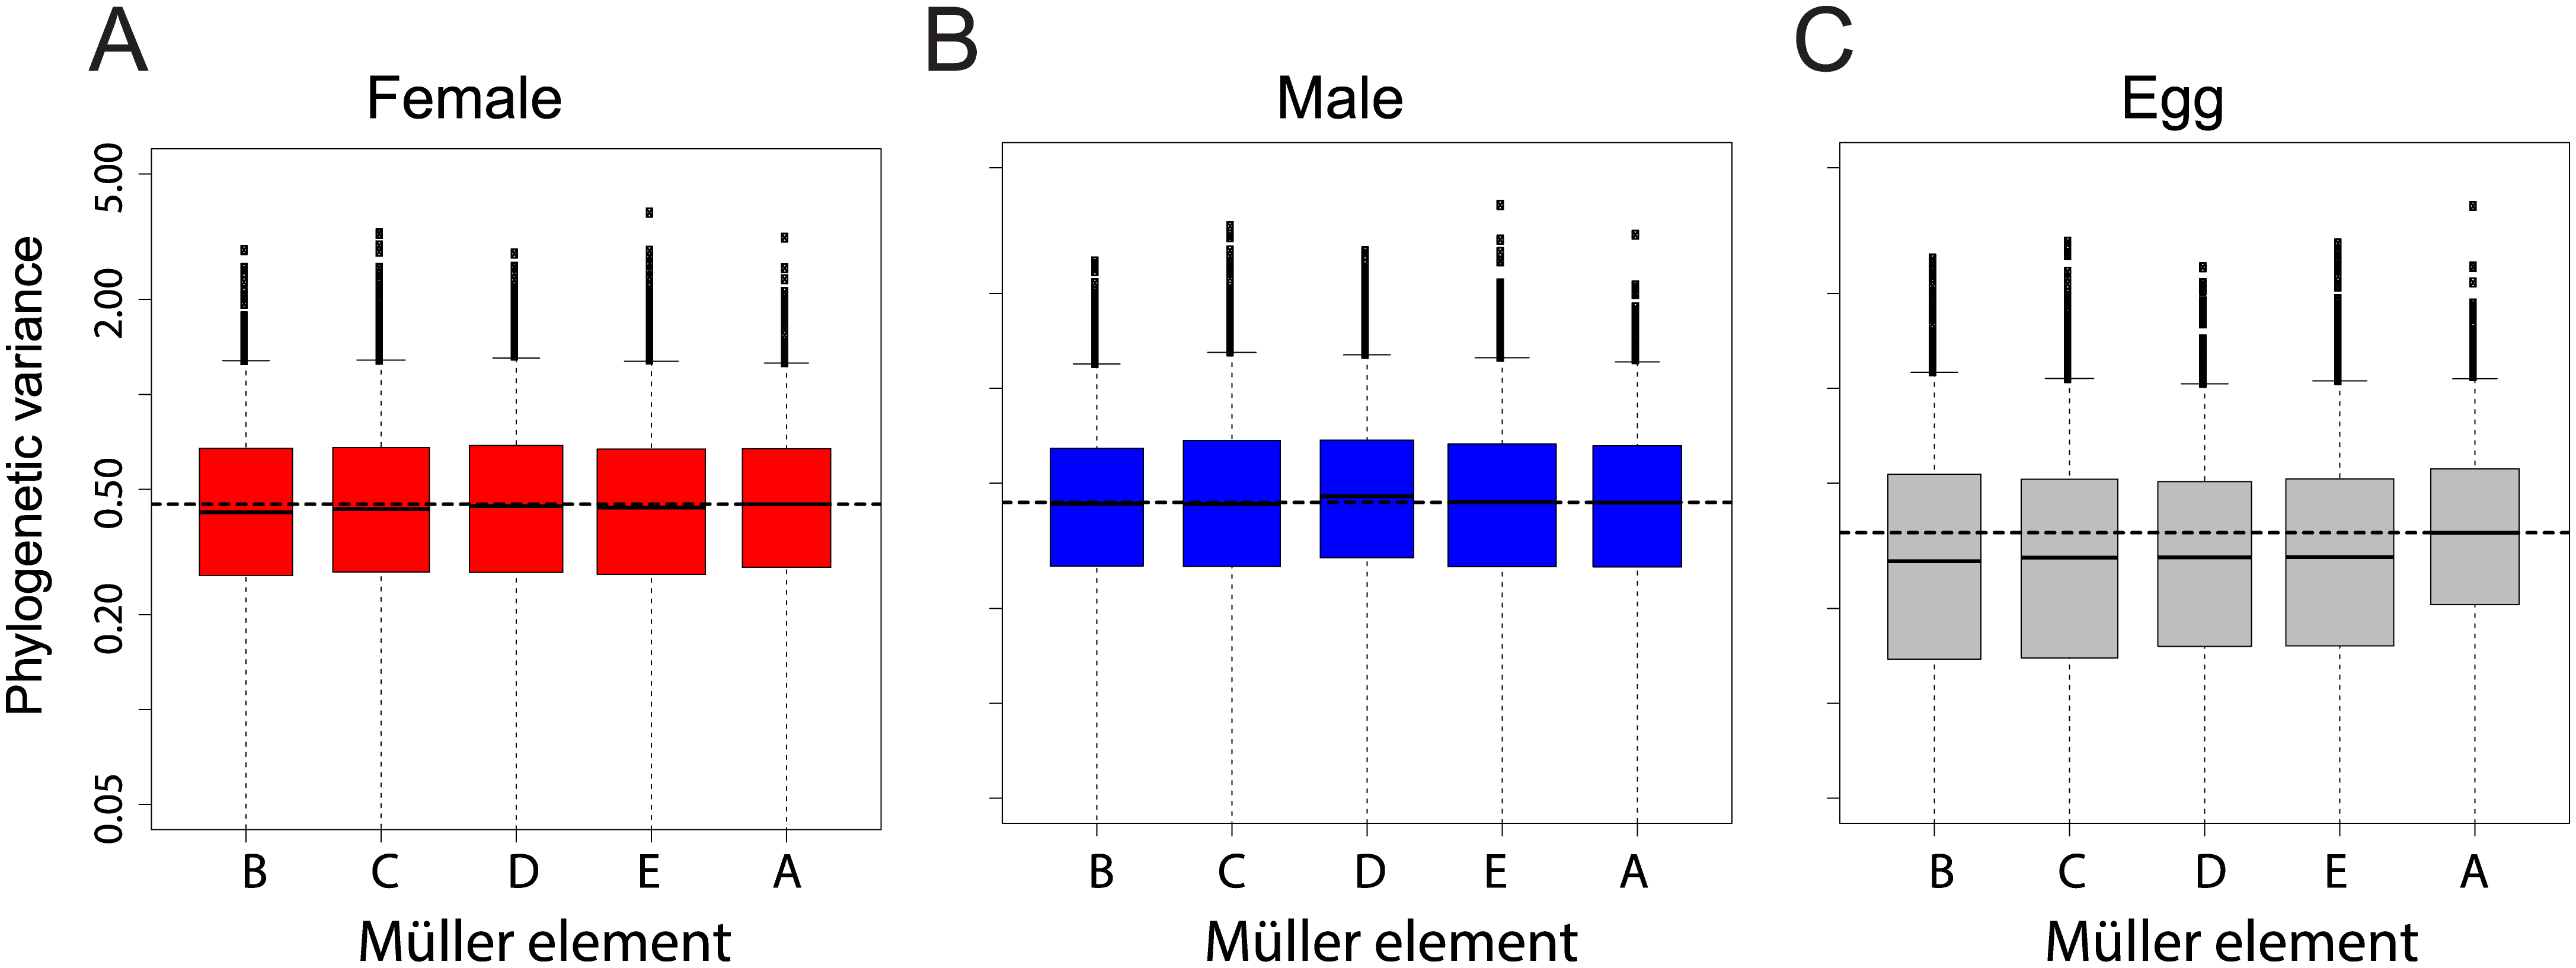 Chromosomal distribution of inter-species gene expression divergence in females (A), males (B) and eggs (C).